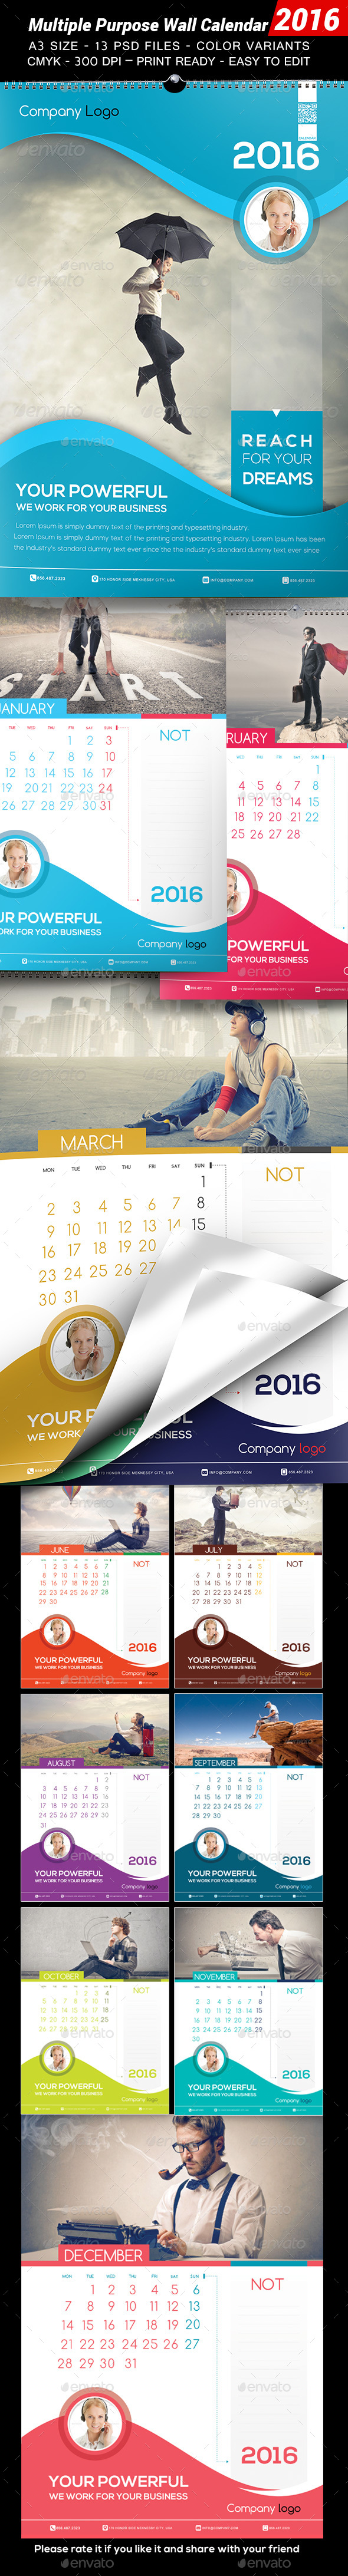 Multiple Purpose Wall Calendar 2016